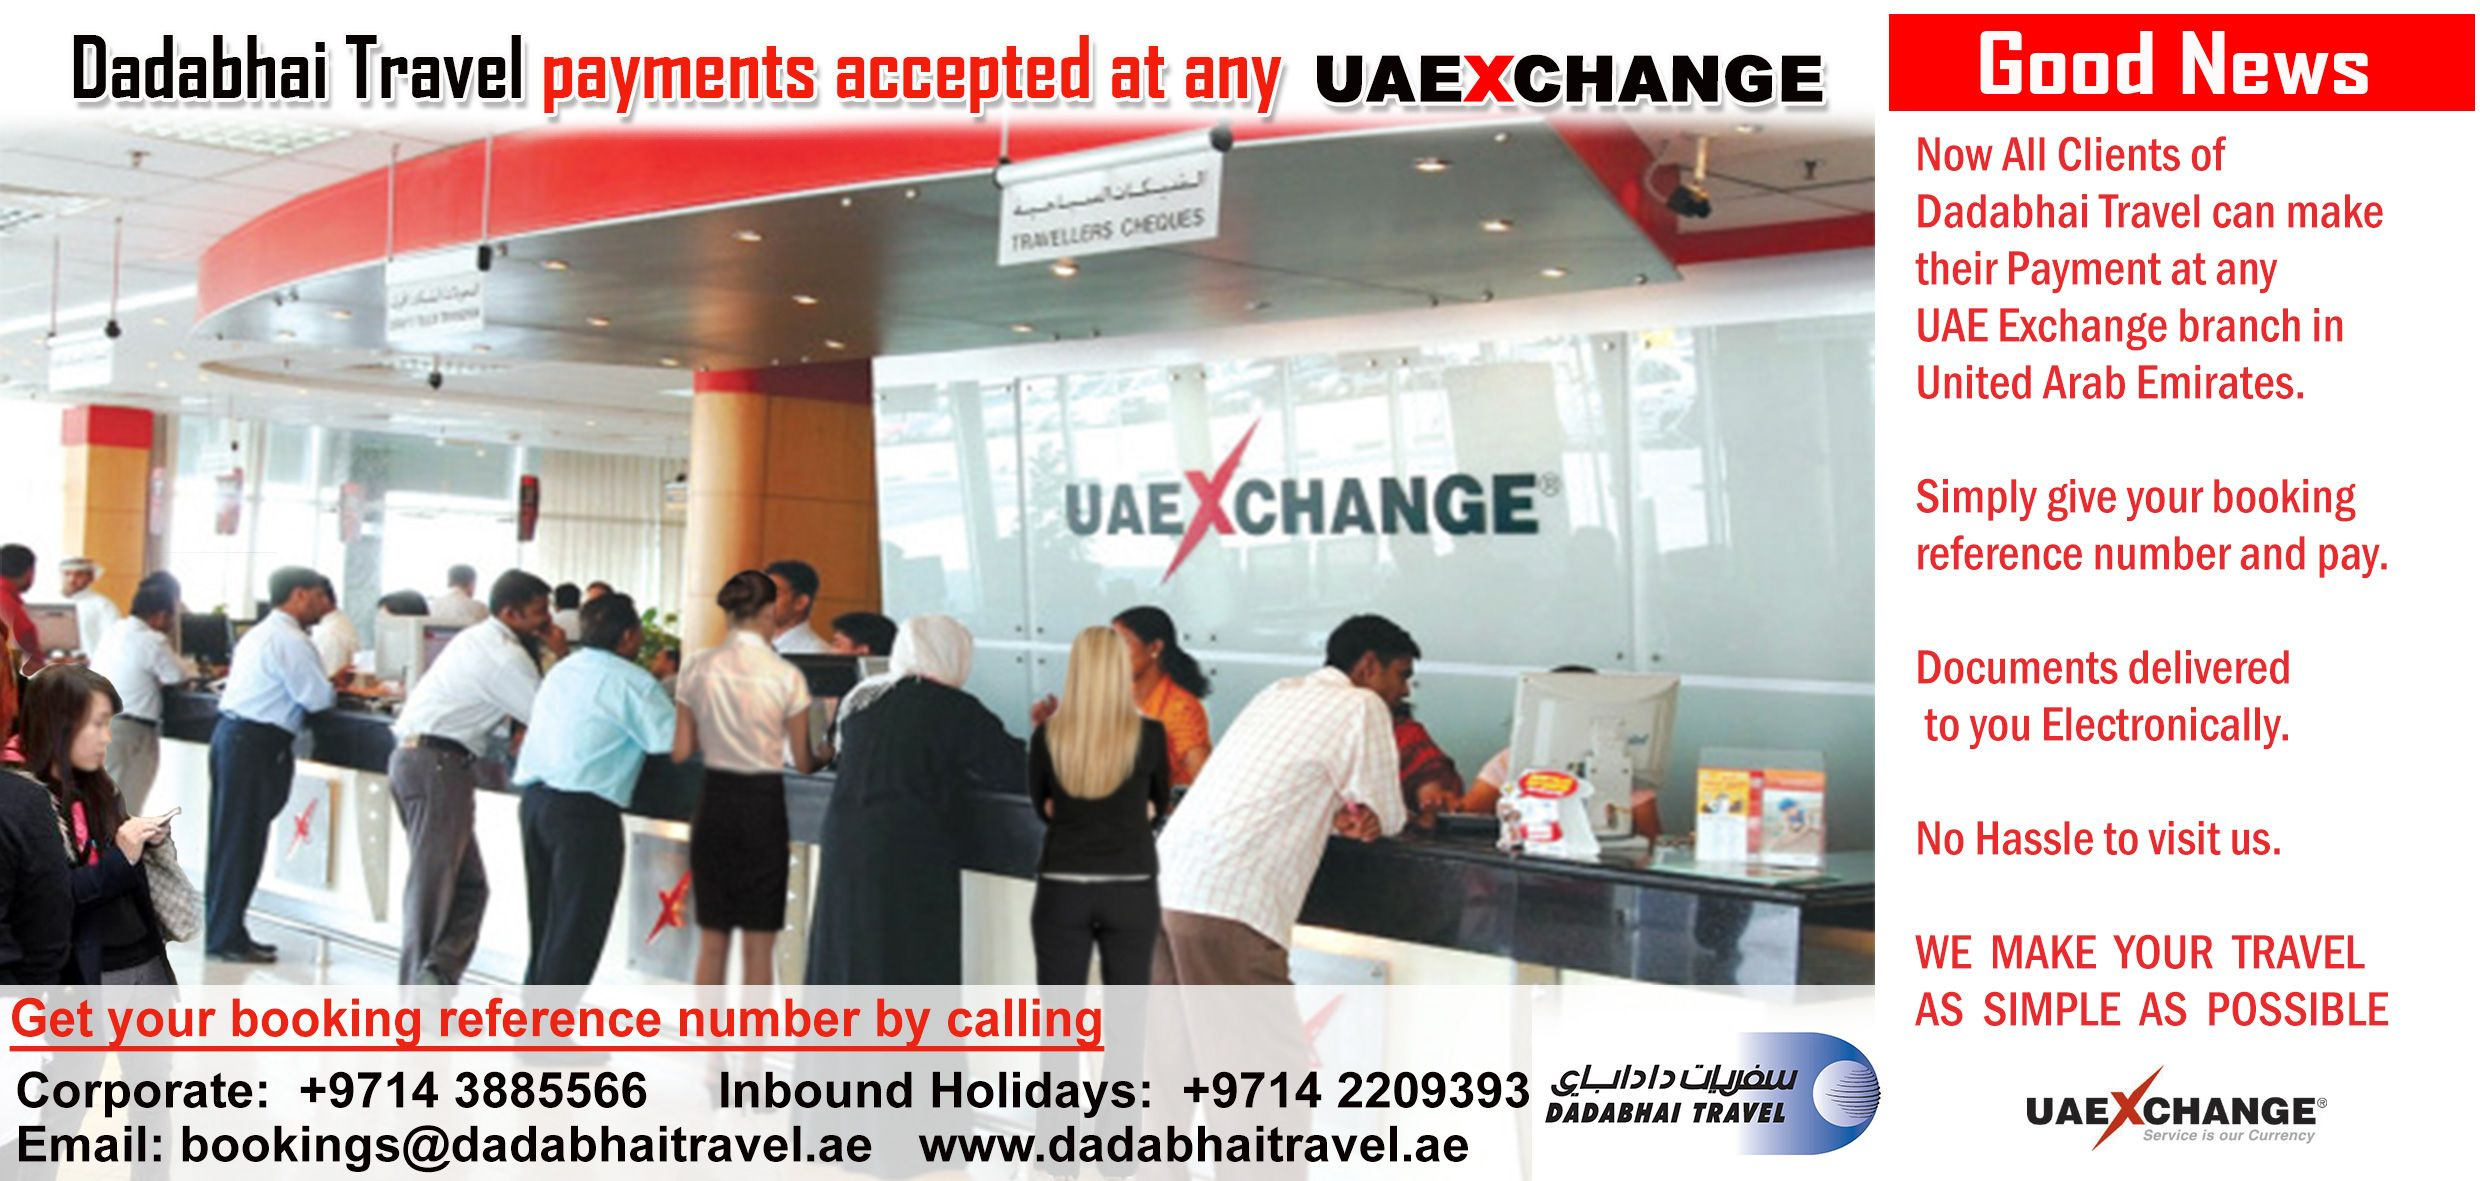 Dadabhai Travel Payments Accepted at any UAE Exchange branch